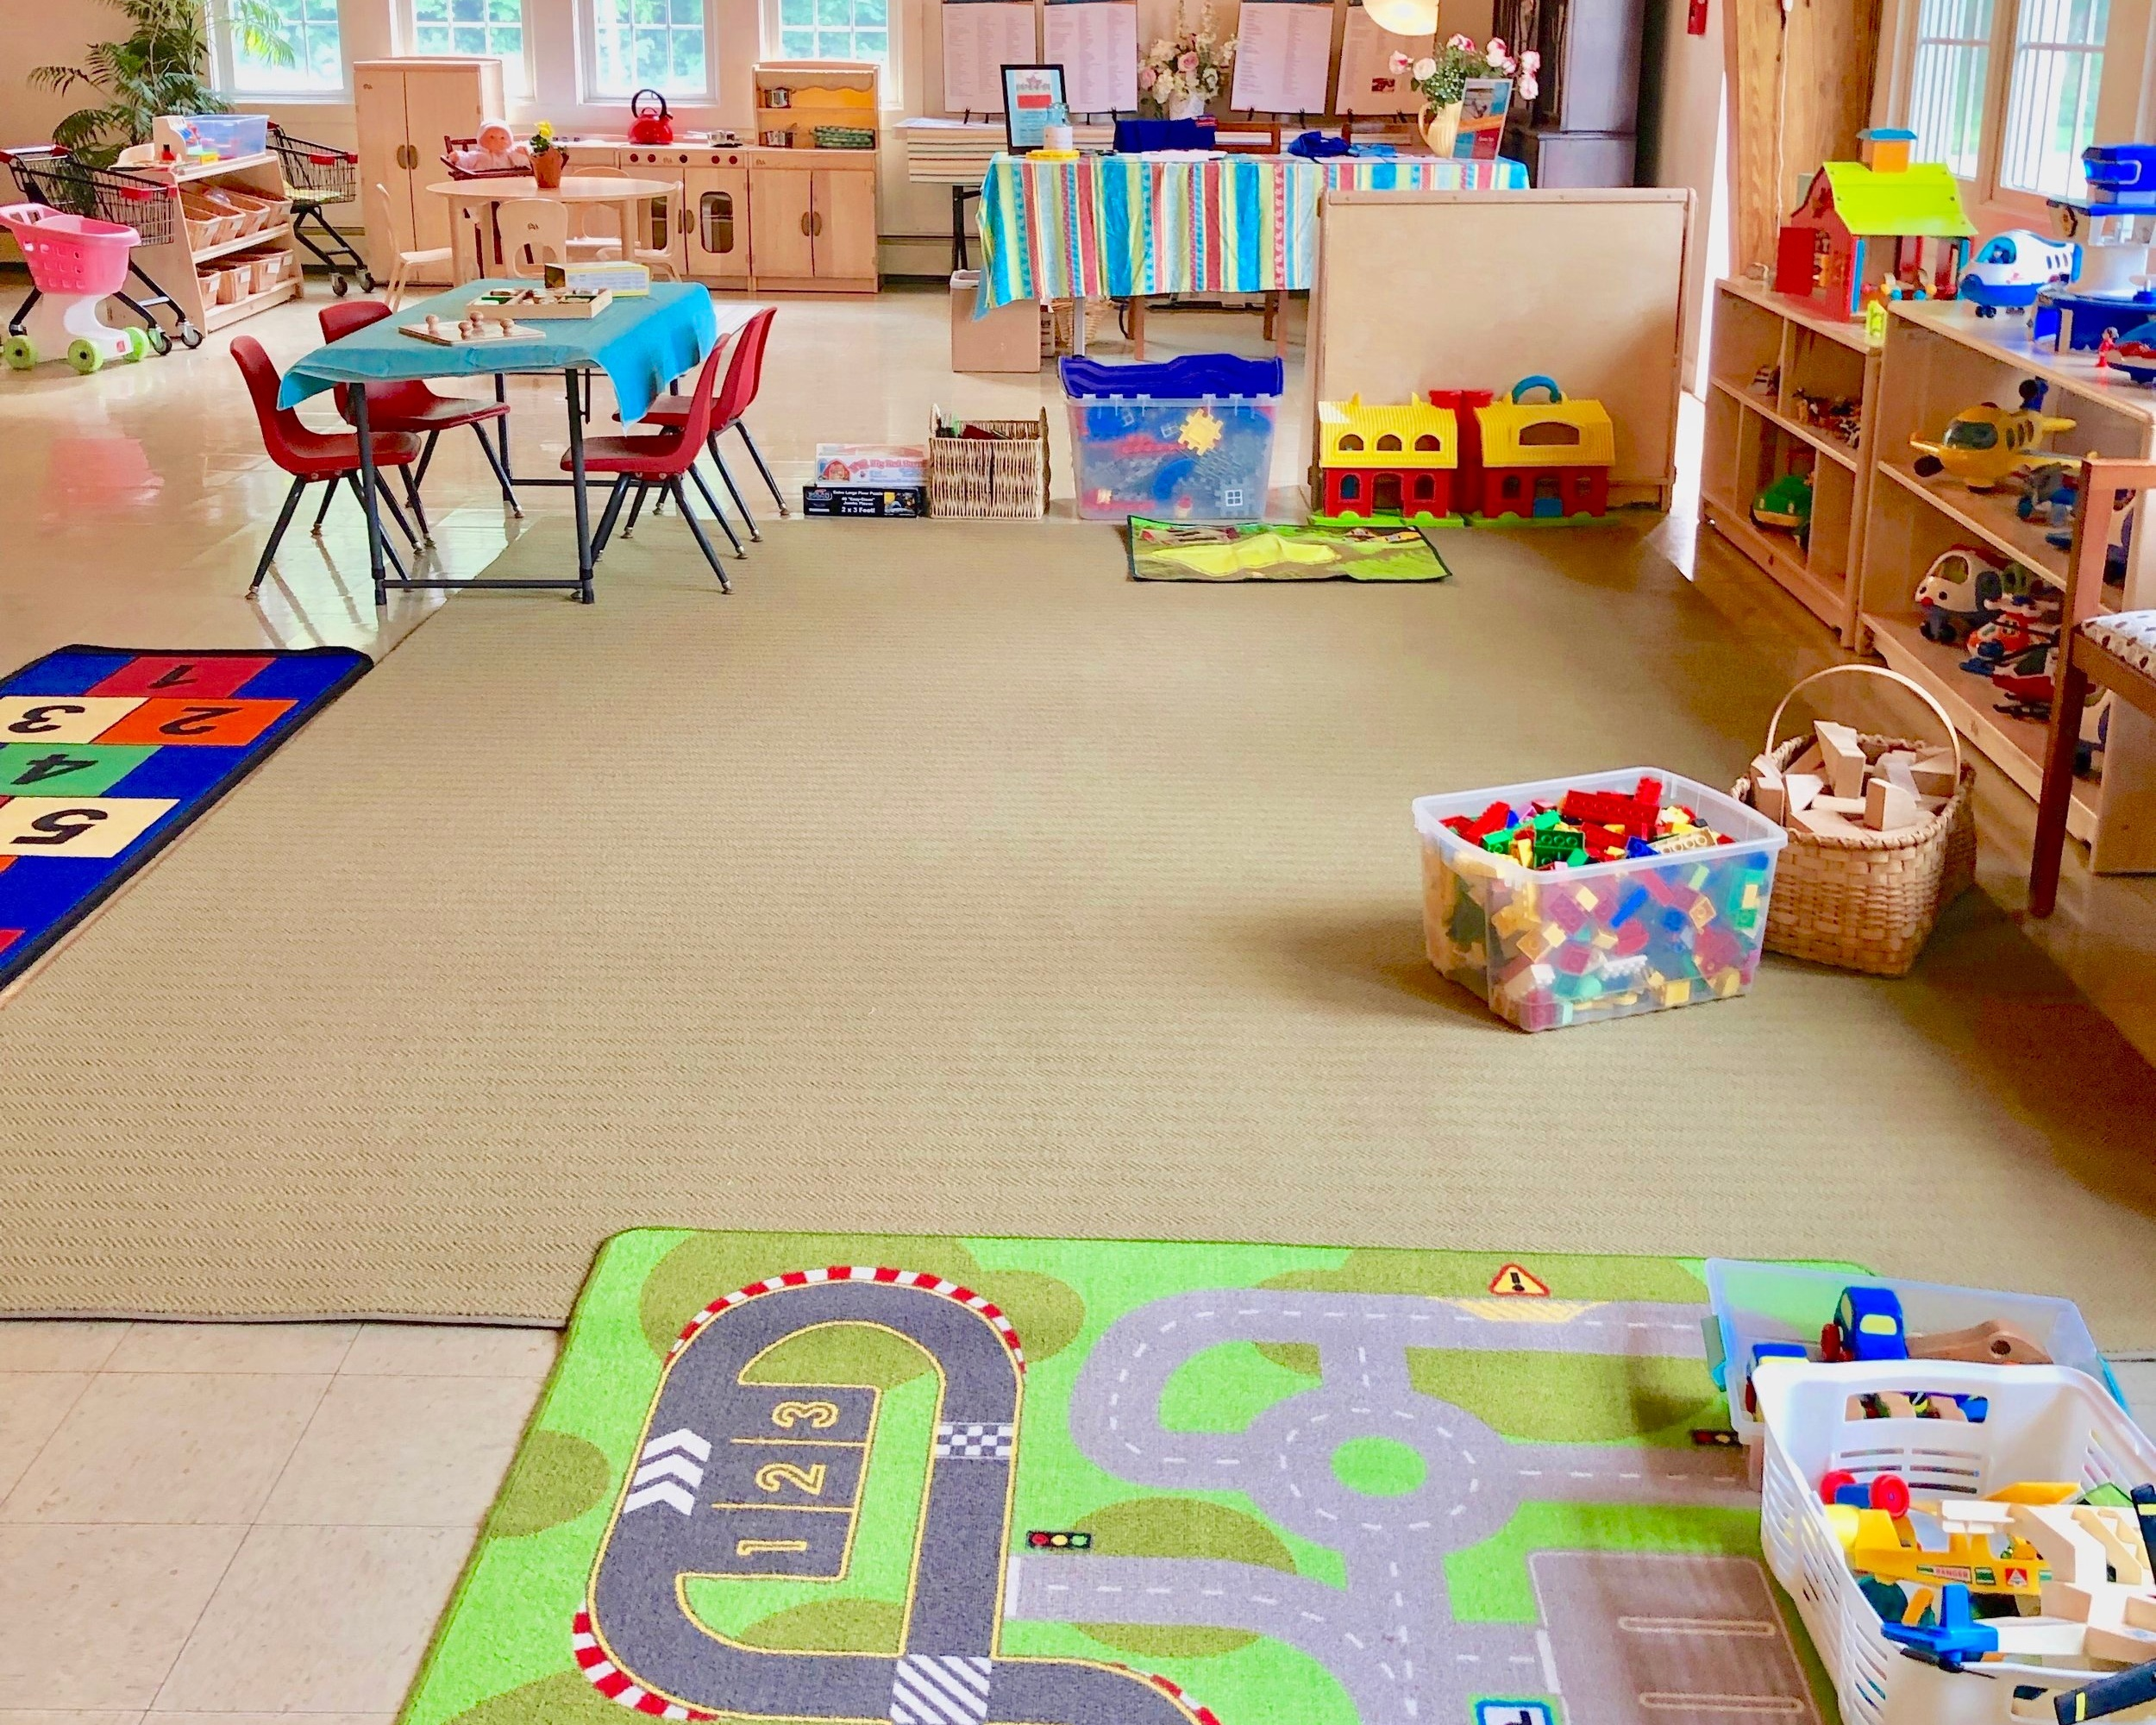 Our play space - Toys and creative materials in our play space rotate weekly.Each visit there will be something new for your family to explore!